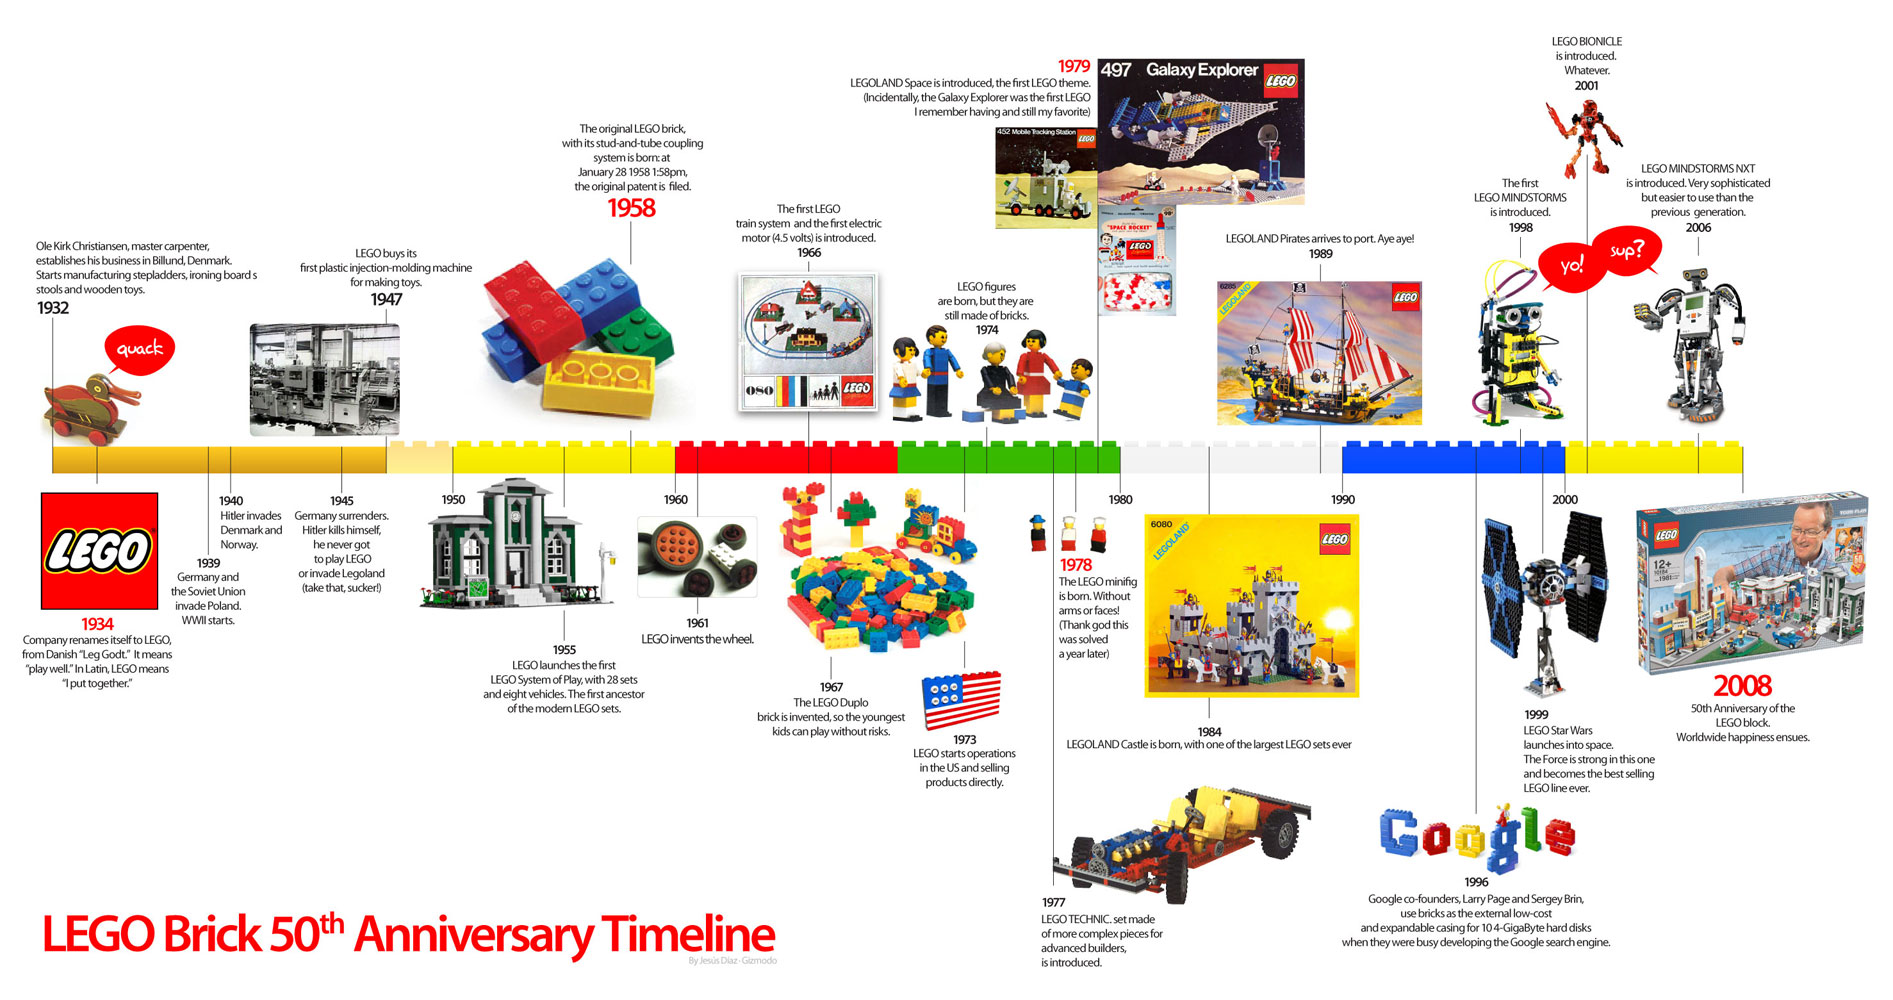 lego brick 50th anniversary timeline infographic infographic list. Black Bedroom Furniture Sets. Home Design Ideas